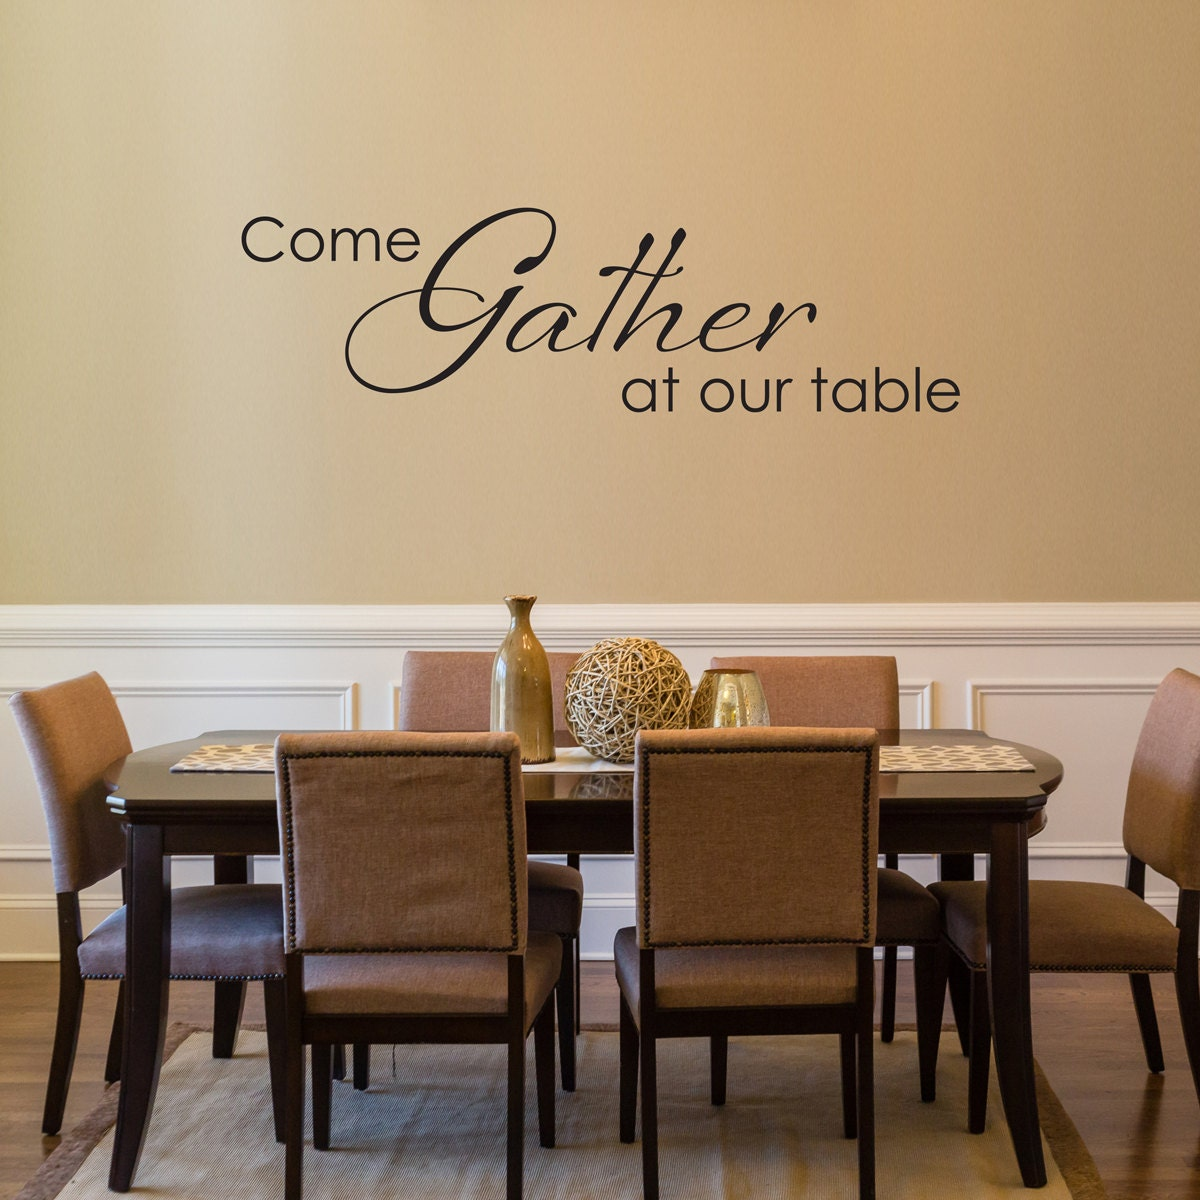 dining room decals come gather at our table wall decal